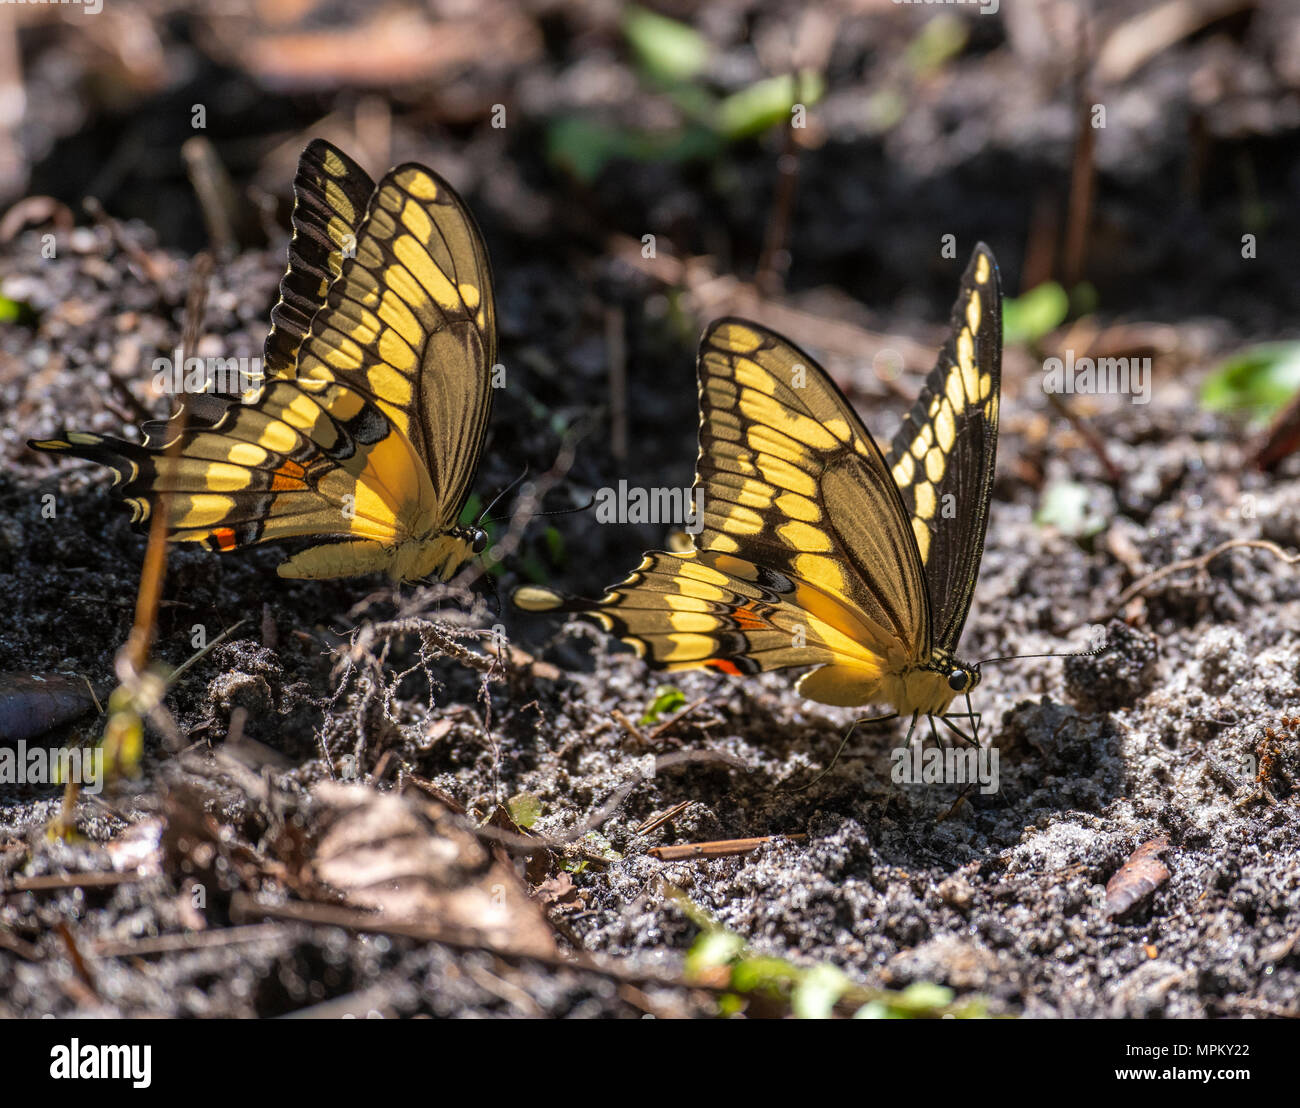 A pair of Giant Swallowtail butterflies sipping moisture from soil - Stock Image